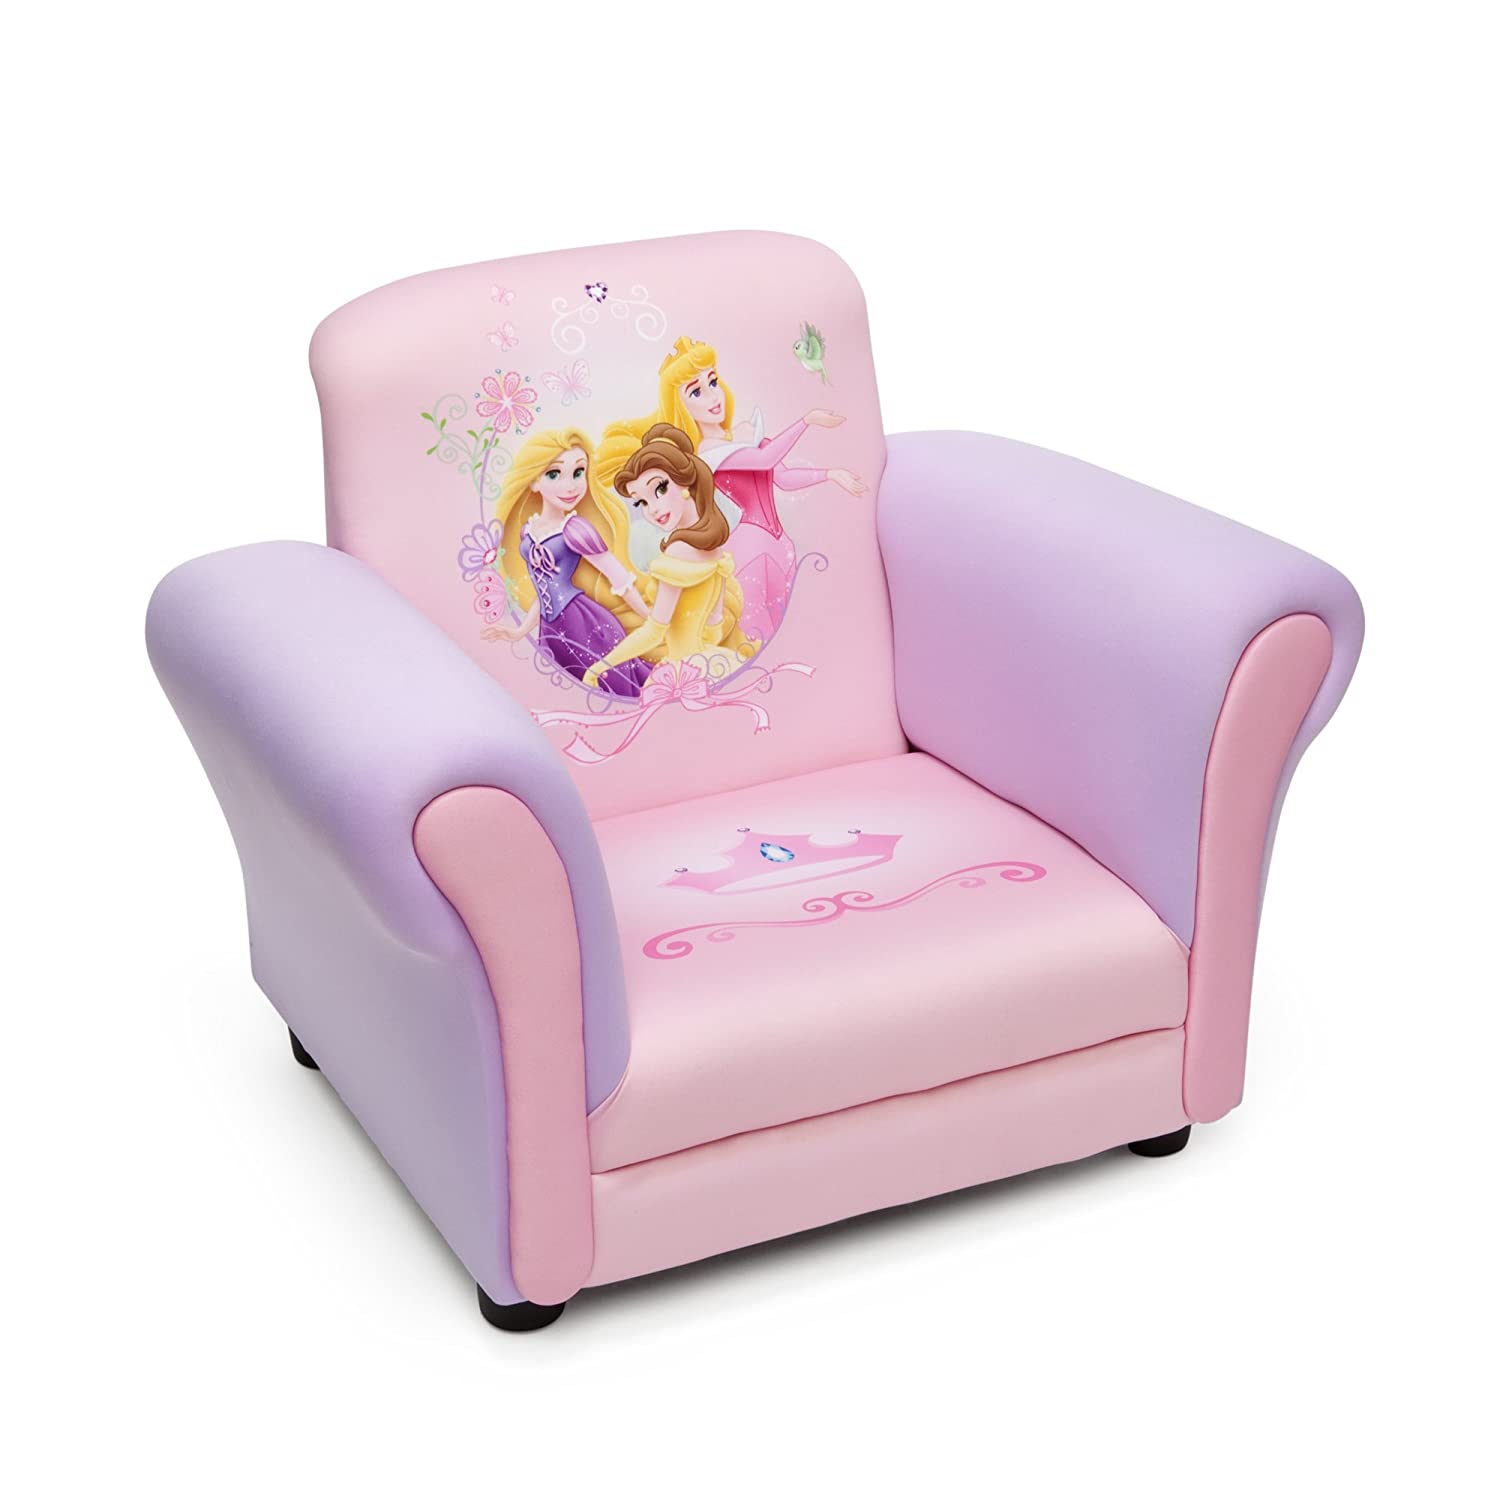 Top 9 Best Princess Chair for Toddlers Reviews in 2020 3